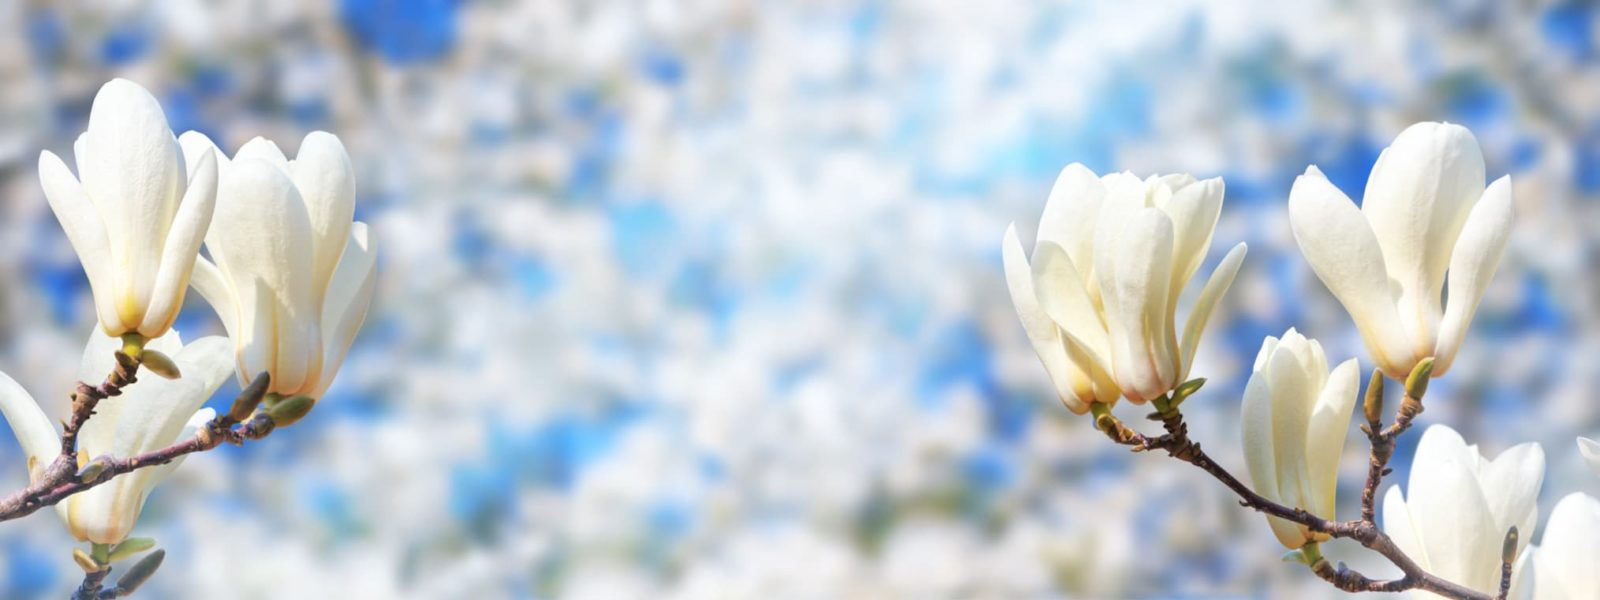 white magnolia flowers with a bright background